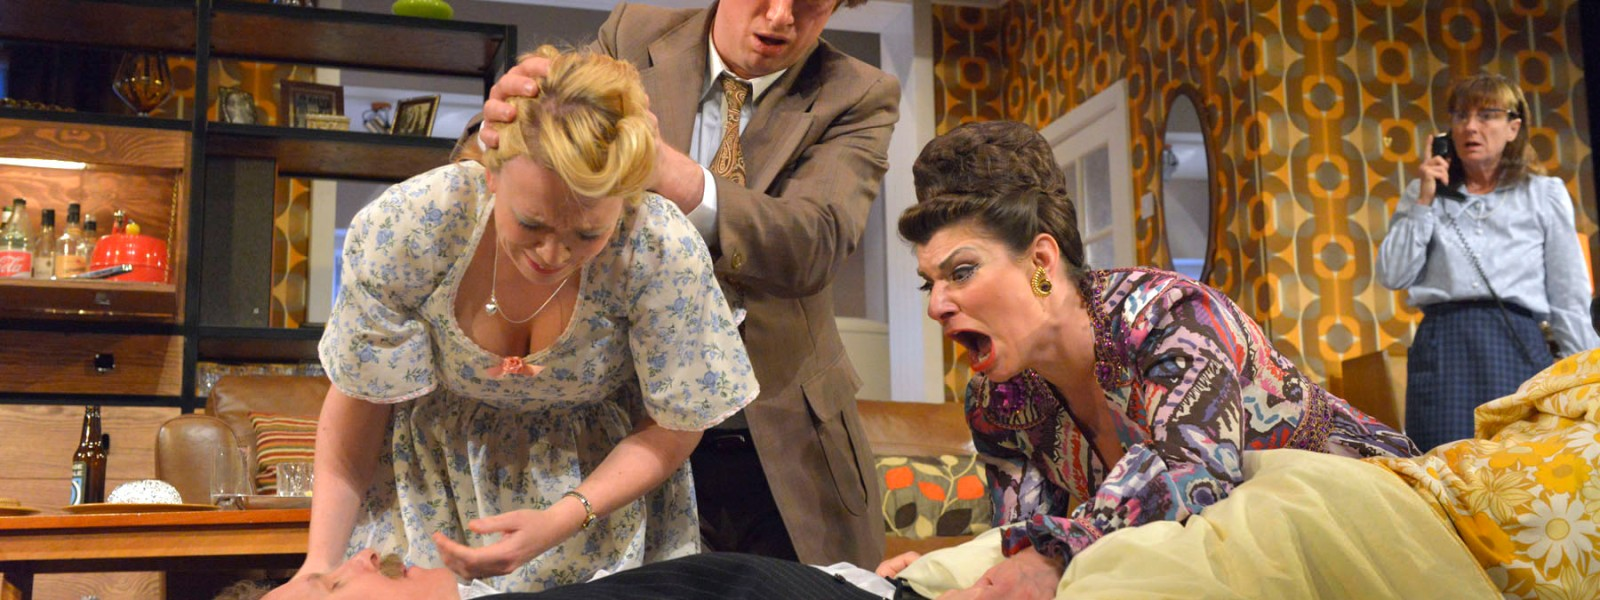 Theatre by the Lake production of ABIGAIL'S PARTY by Mike Leigh directed by Ian Forrest - review by Katie Hale